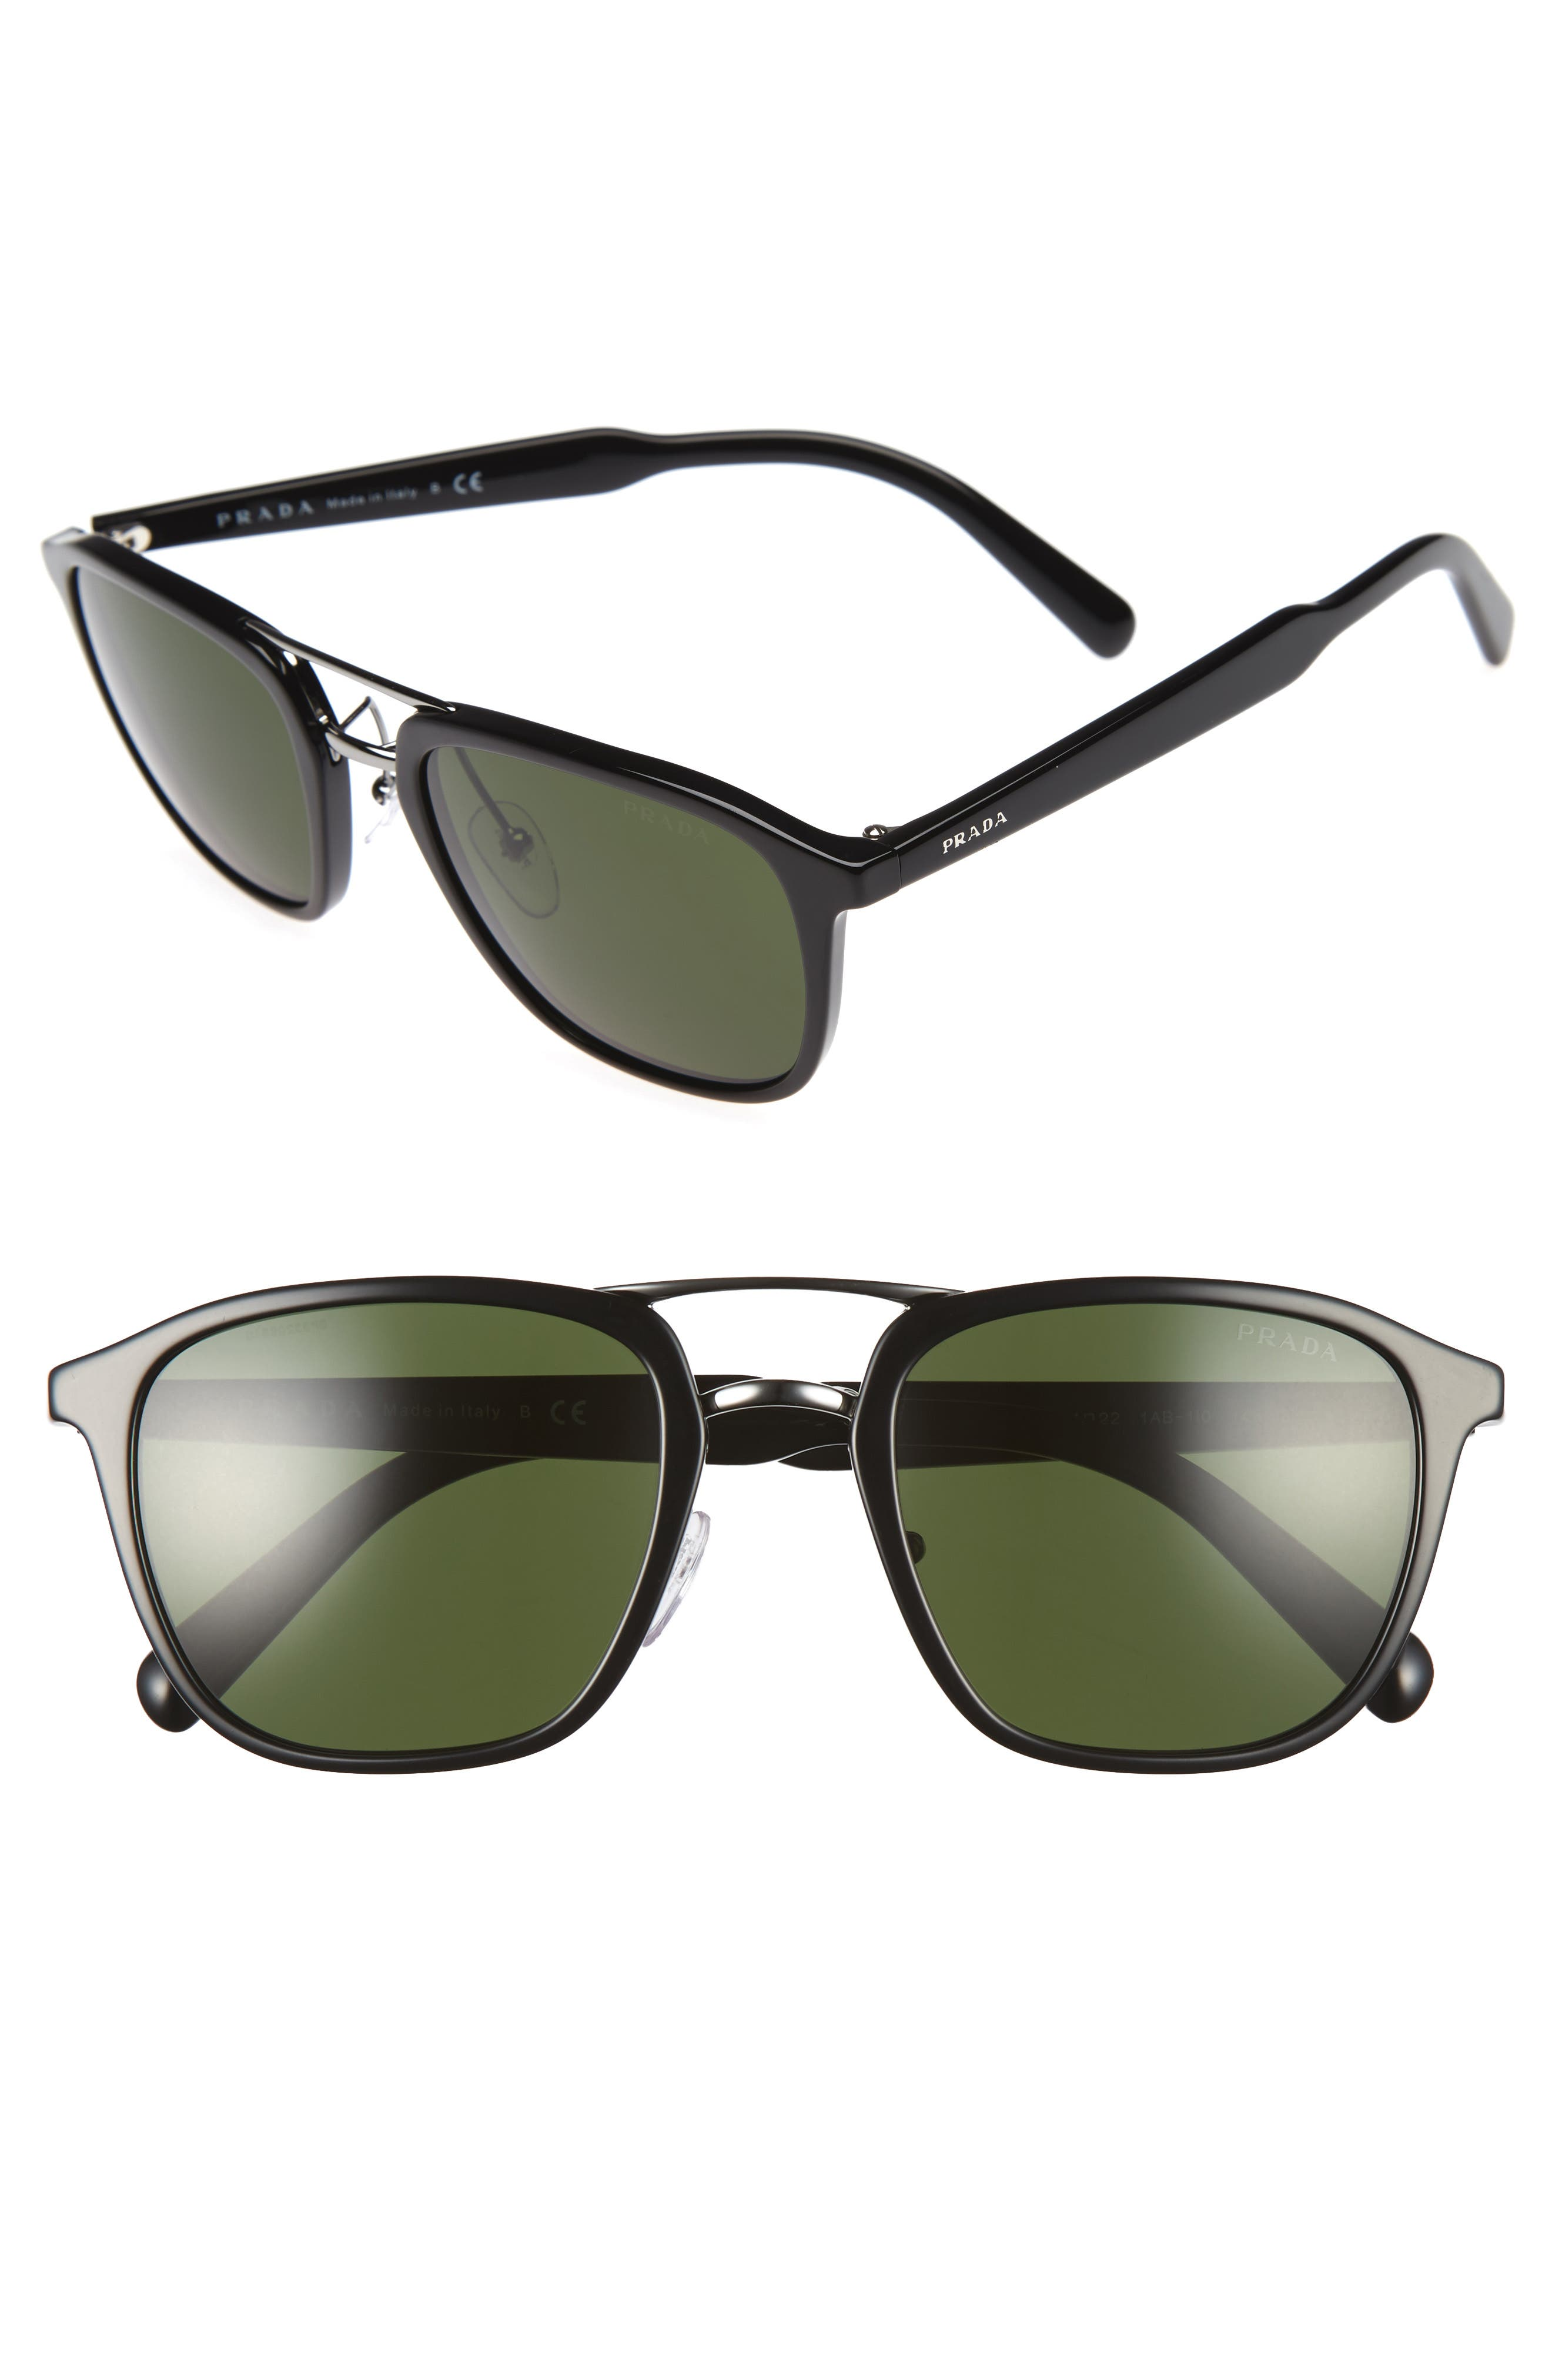 Prada 54mm Sunglasses